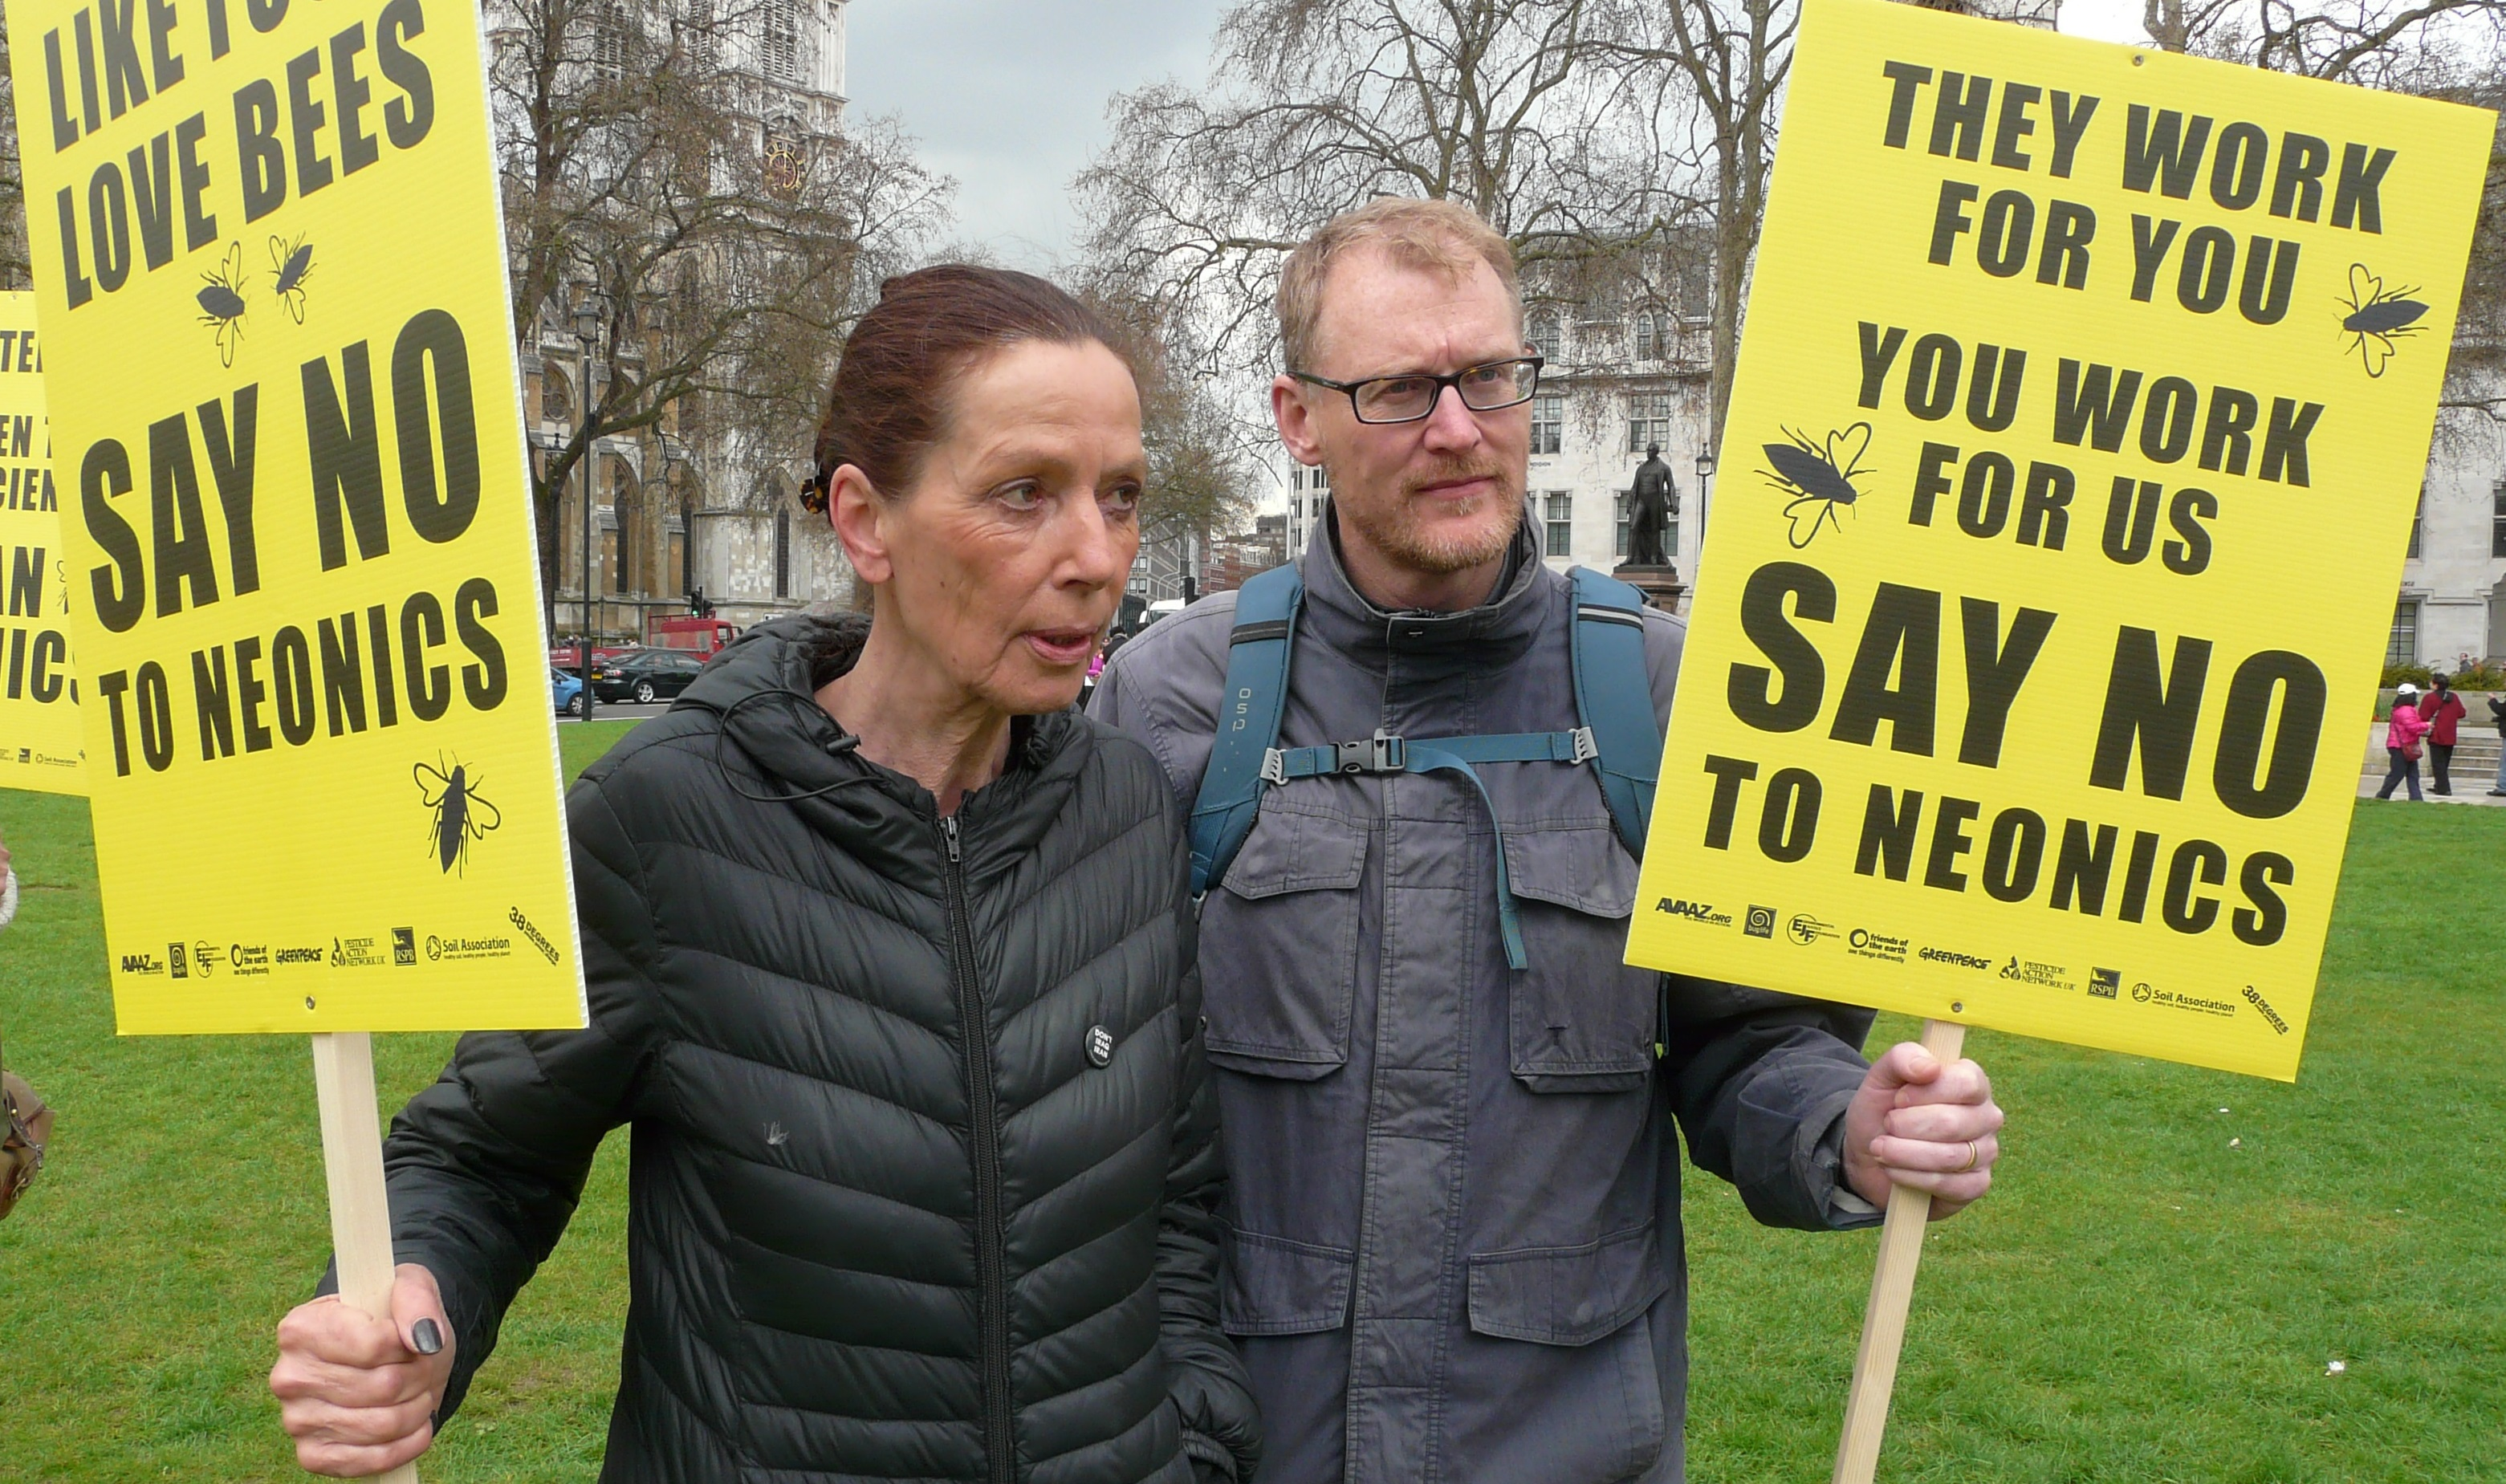 PAN UK campaigns against the use of neonicotinoids